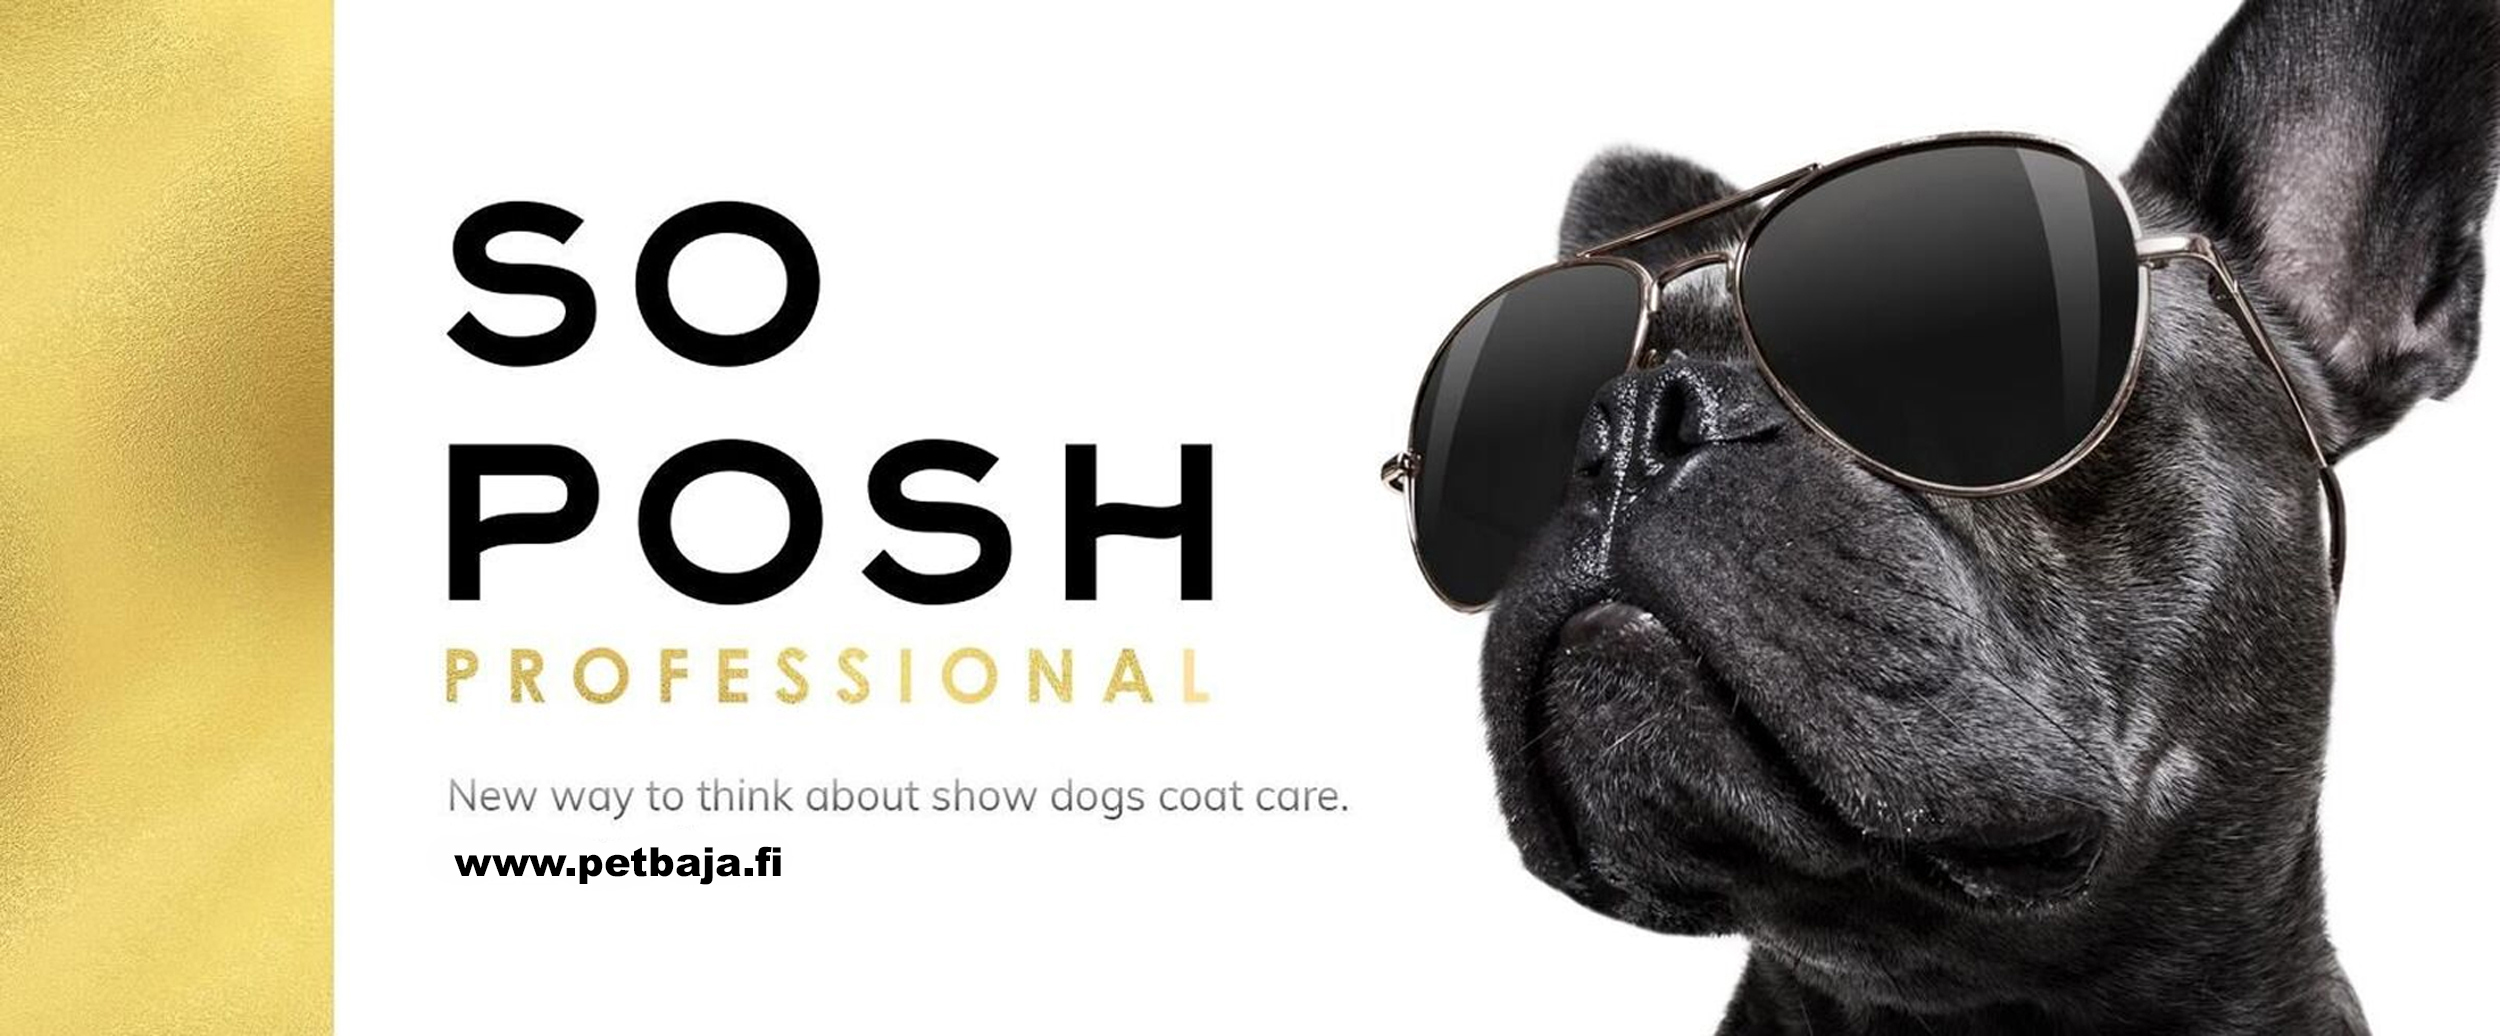 SO_POSH_Facebook_Cover_PetBaja_1_2019